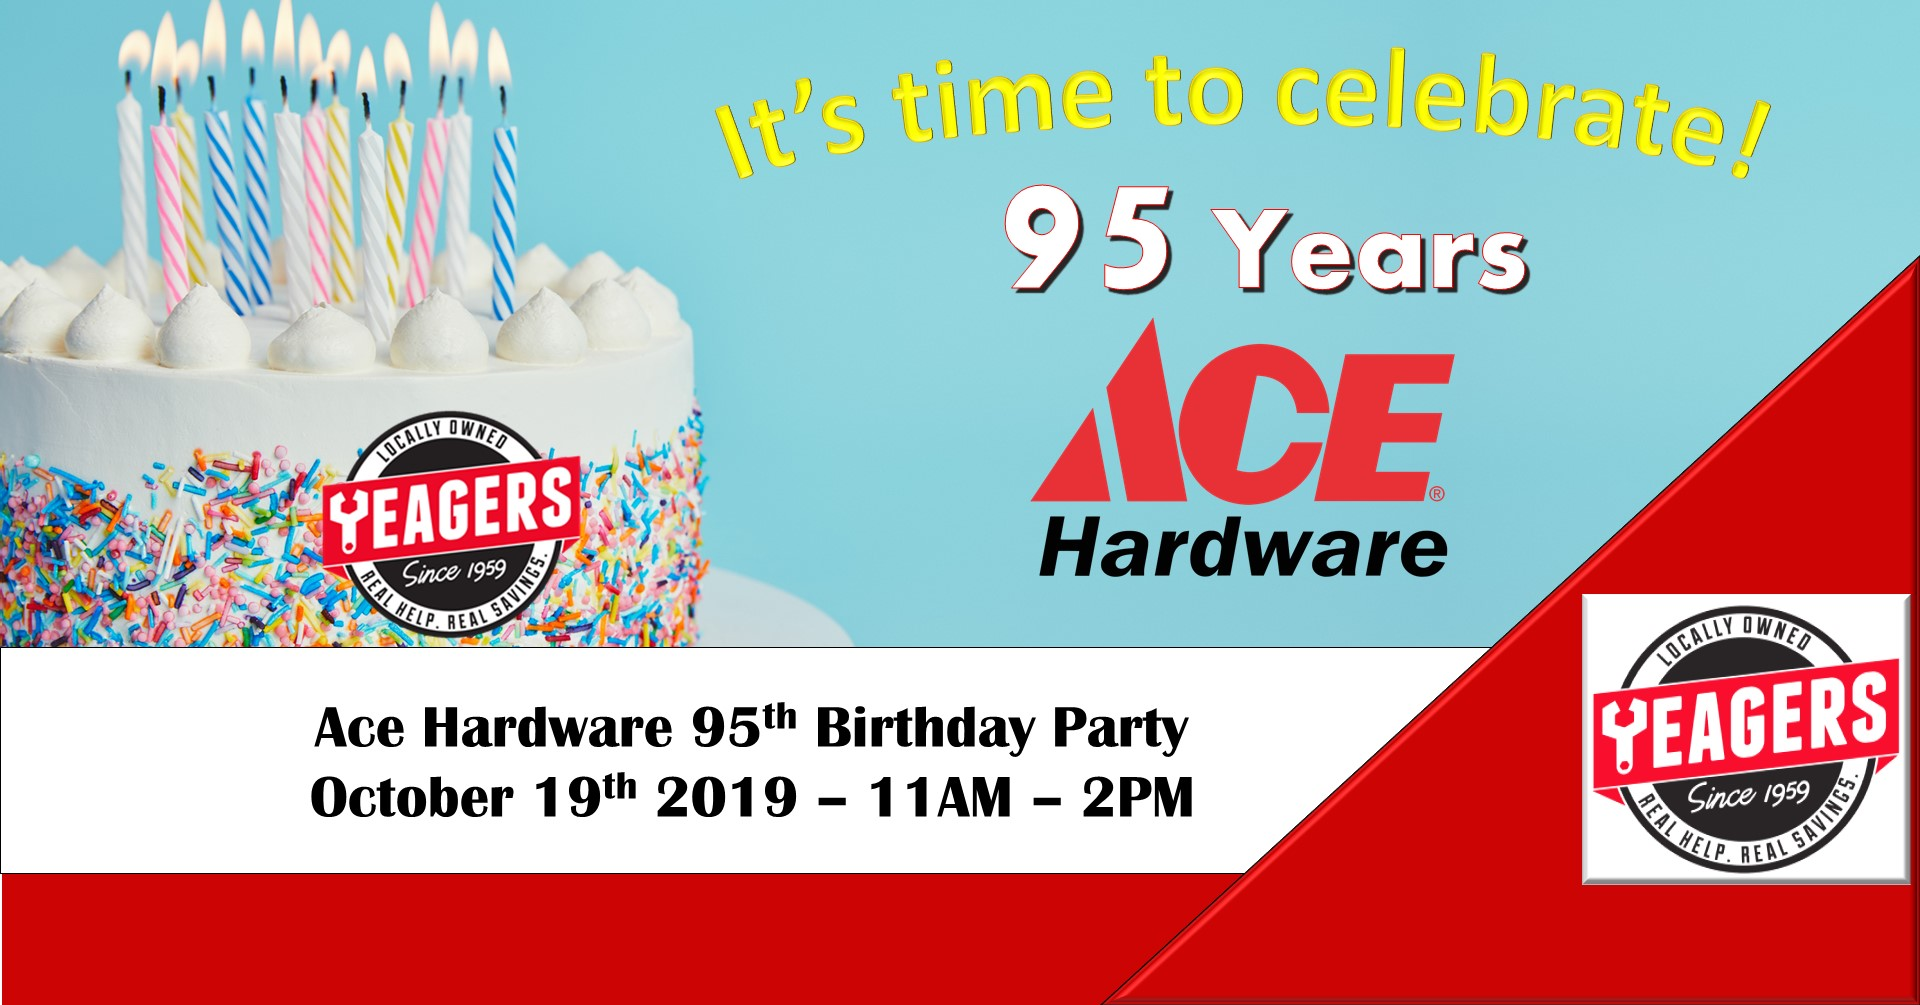 ACE Hardware 95th Birthday Party